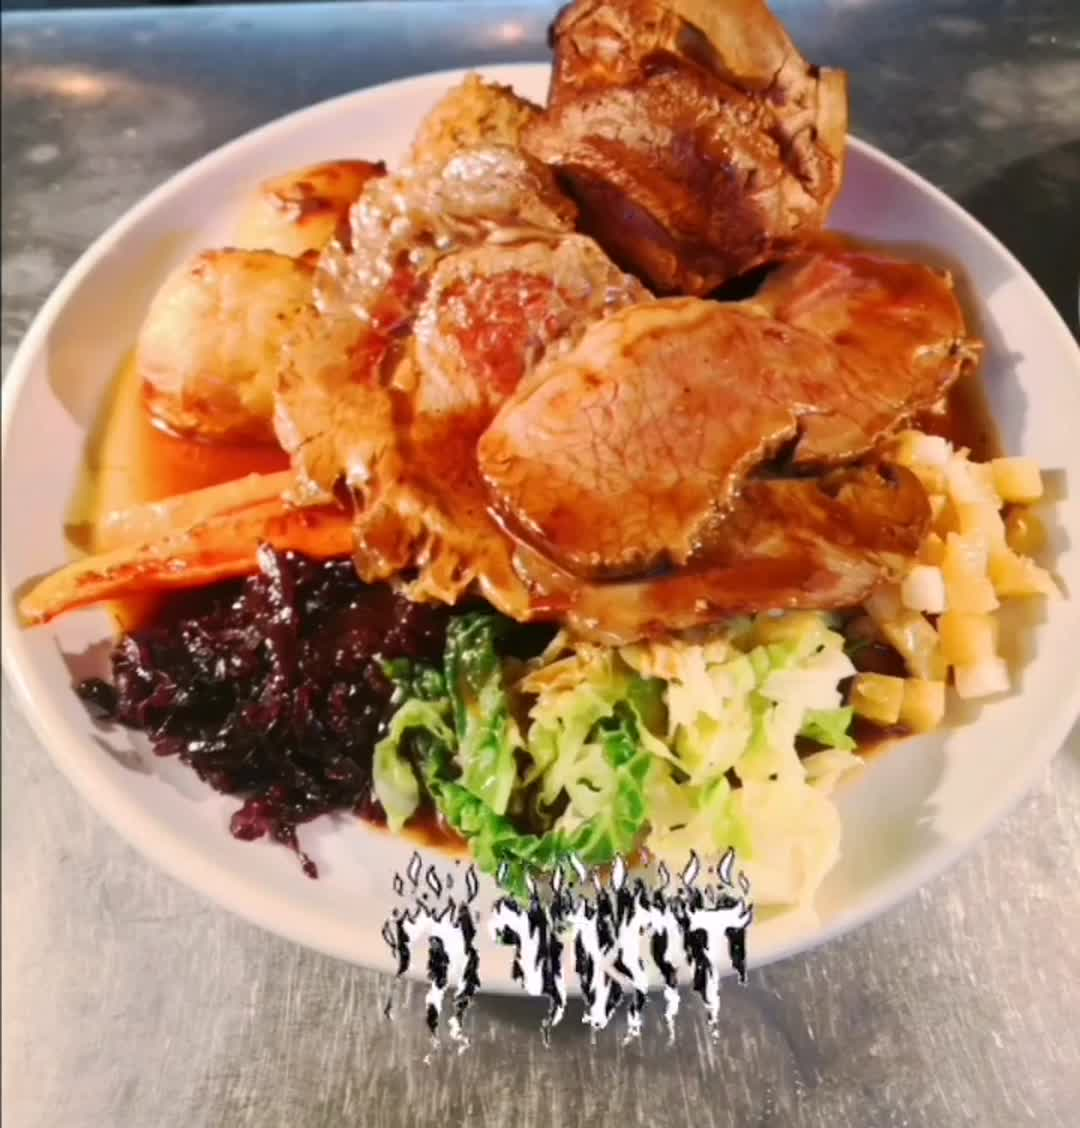 Hello Shipmates! ⚓ We still have tables available for Sunday Lunch Tomorrow.  Give us a call or follow the link in our bio to book your lunch in.⚓  #sundayroast #sundaylunch #roastdinner  #beefroast #chickenroast #veggieroast #pubmeal #pubvibes #hackneyfoodie #hackneydowns #hackneylocal #hackney #roastpotatoes #oldshiphackney #clapton #hackneycentral #dalston #shorditch #pubs #letseat #stokenewington #yummy #sundaydinner #deliveroo #takeaway